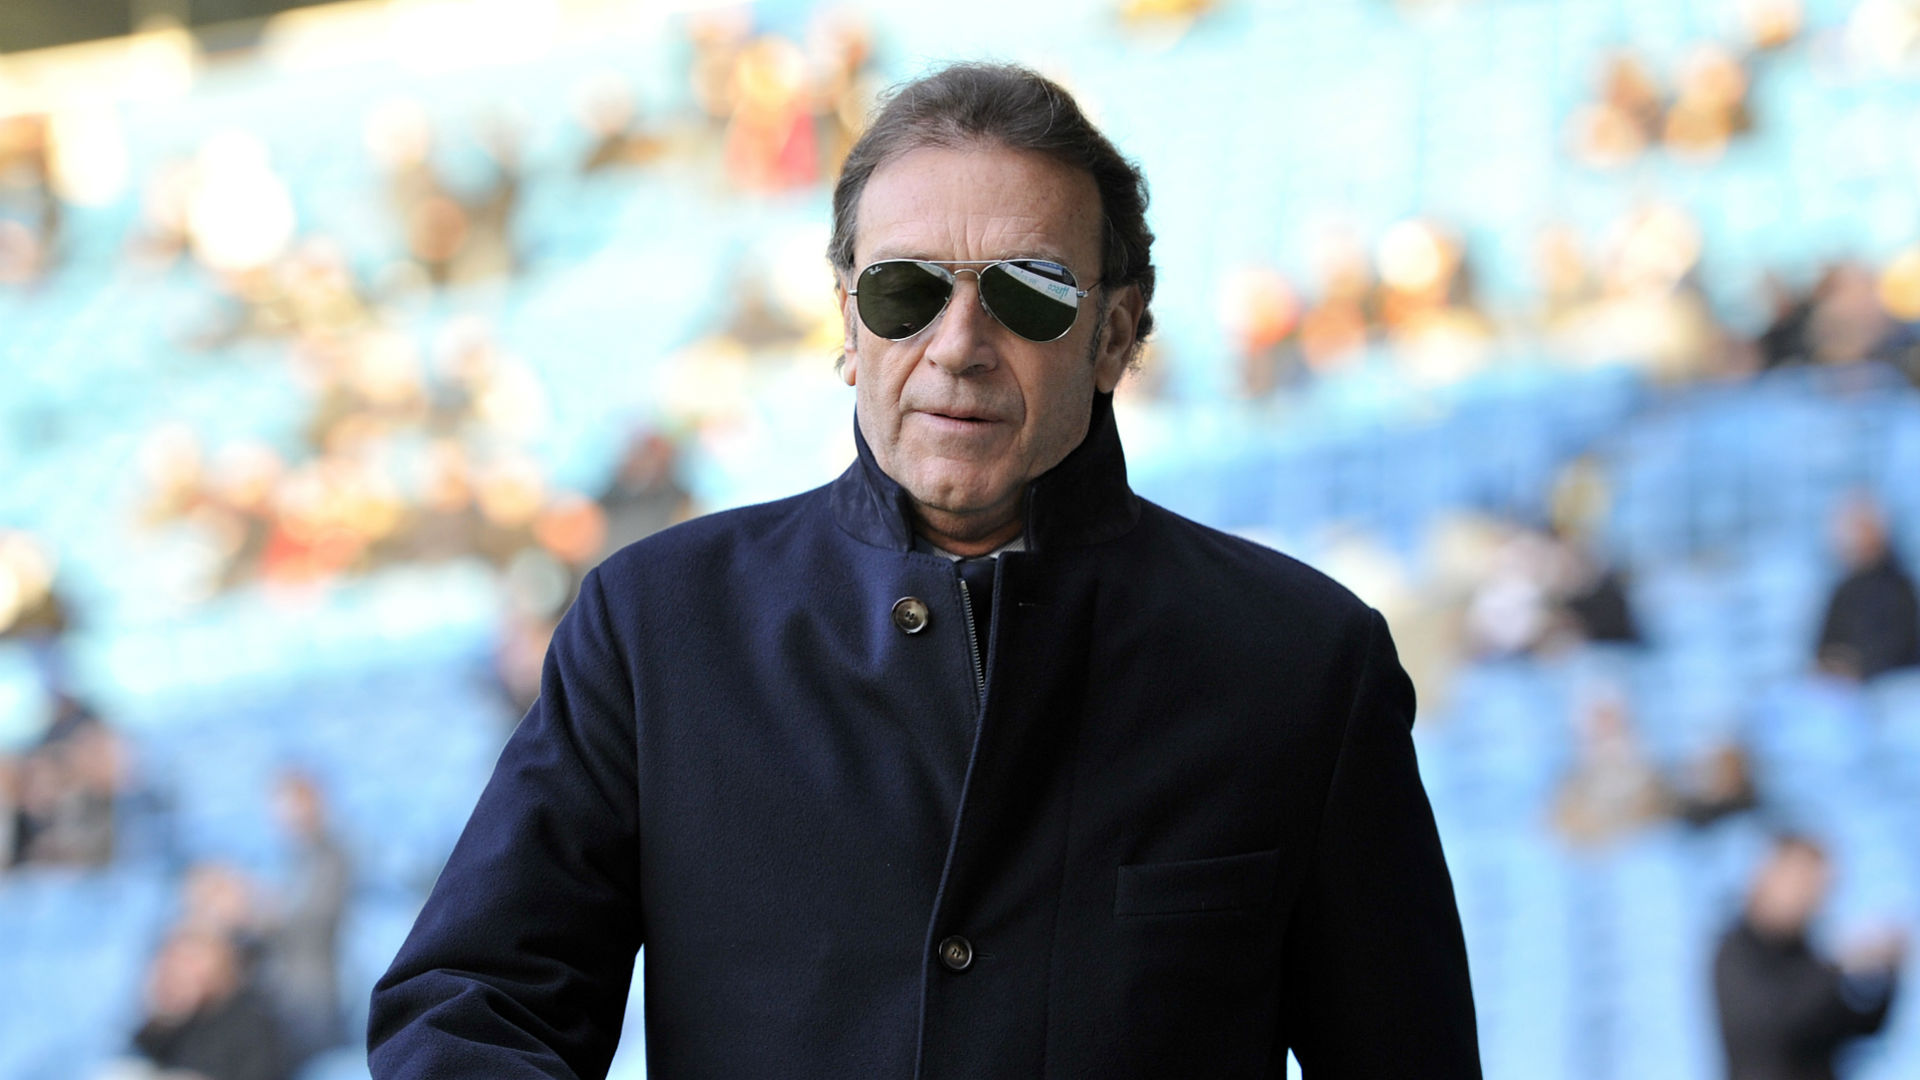 Italy's top flight is due to resume from June 20, with the Coppa Italia to be finished in the week prior, but Massimo Cellino is not happy.